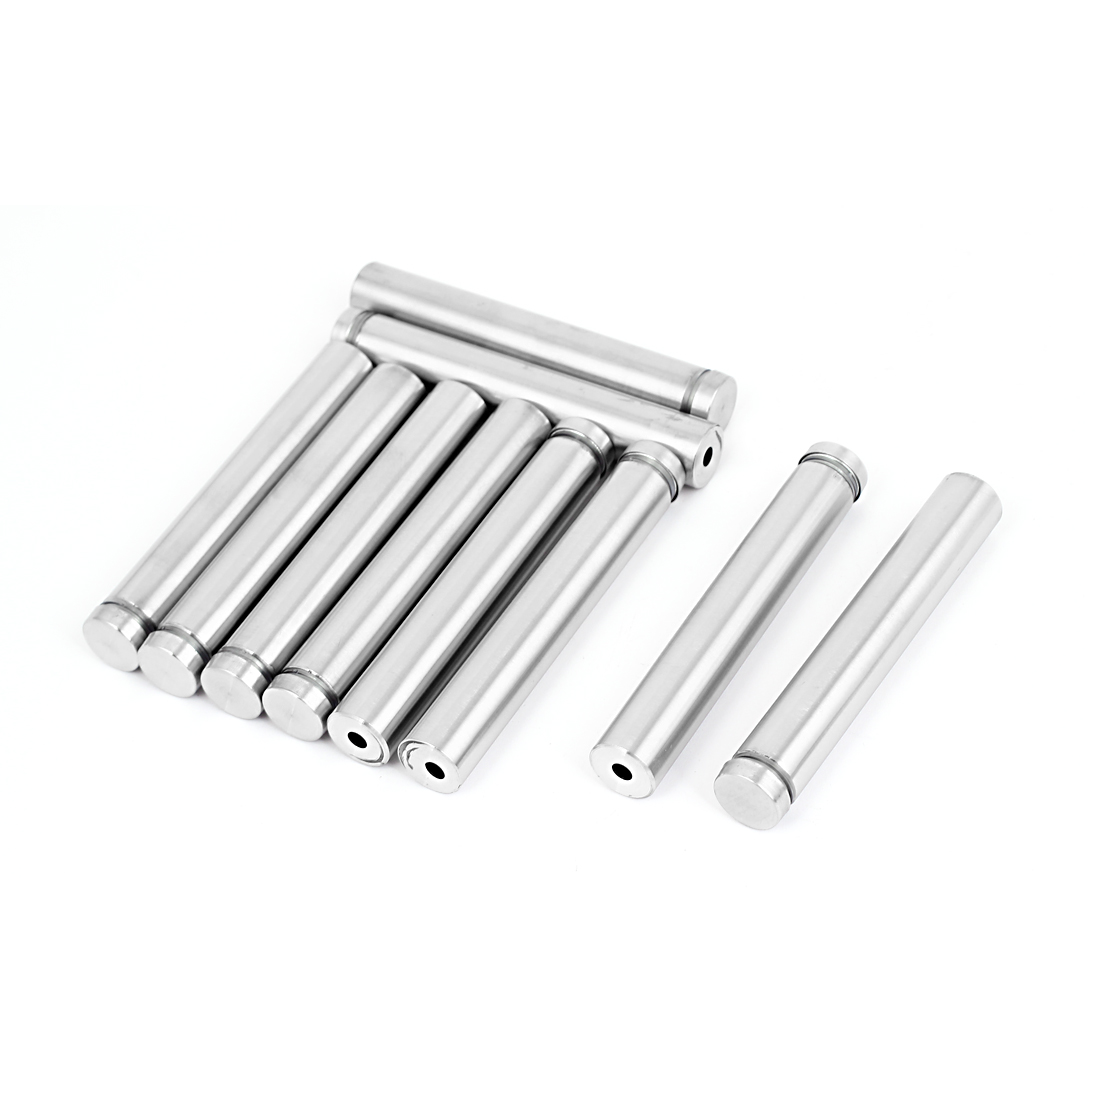 16mm x 100mm Stainless Steel Advertising Frameless Glass Standoff Pin 10pcs